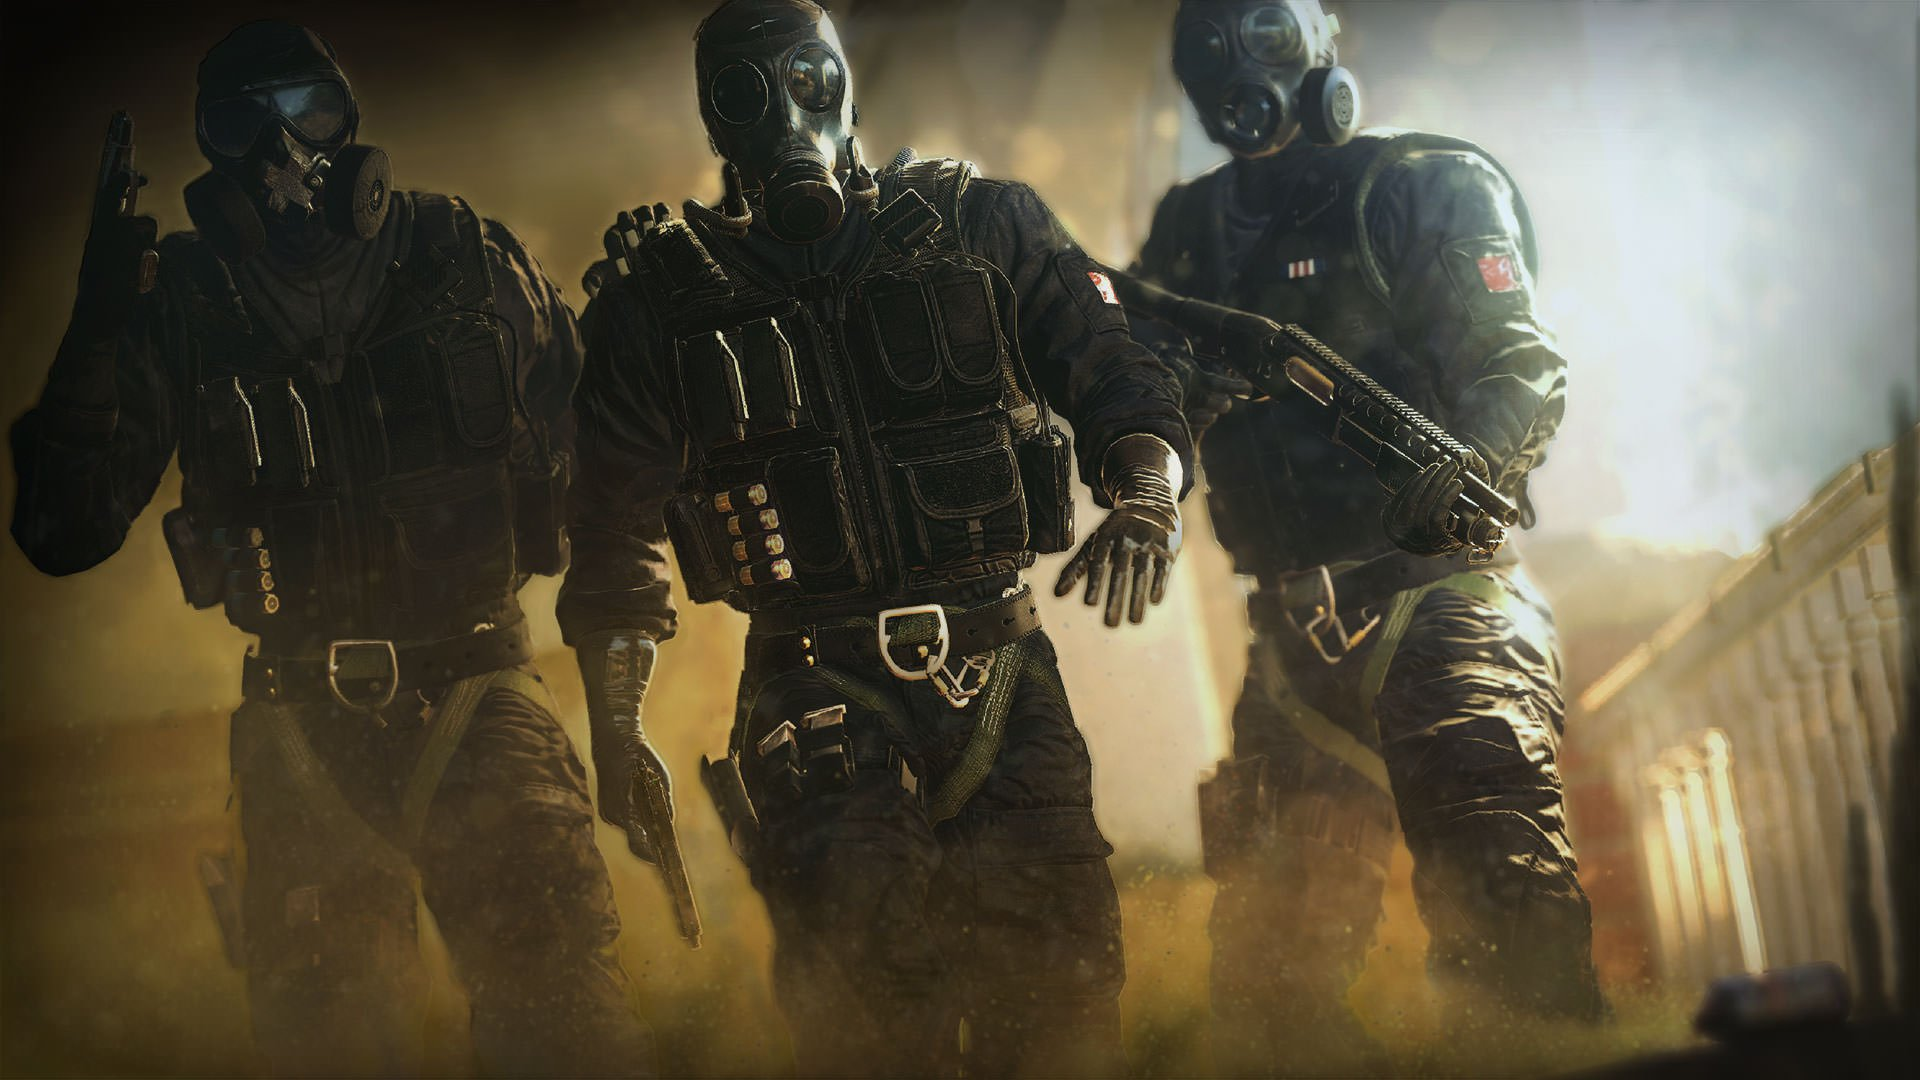 Rainbow Six Siege Wallpapers Top Free Rainbow Six Siege